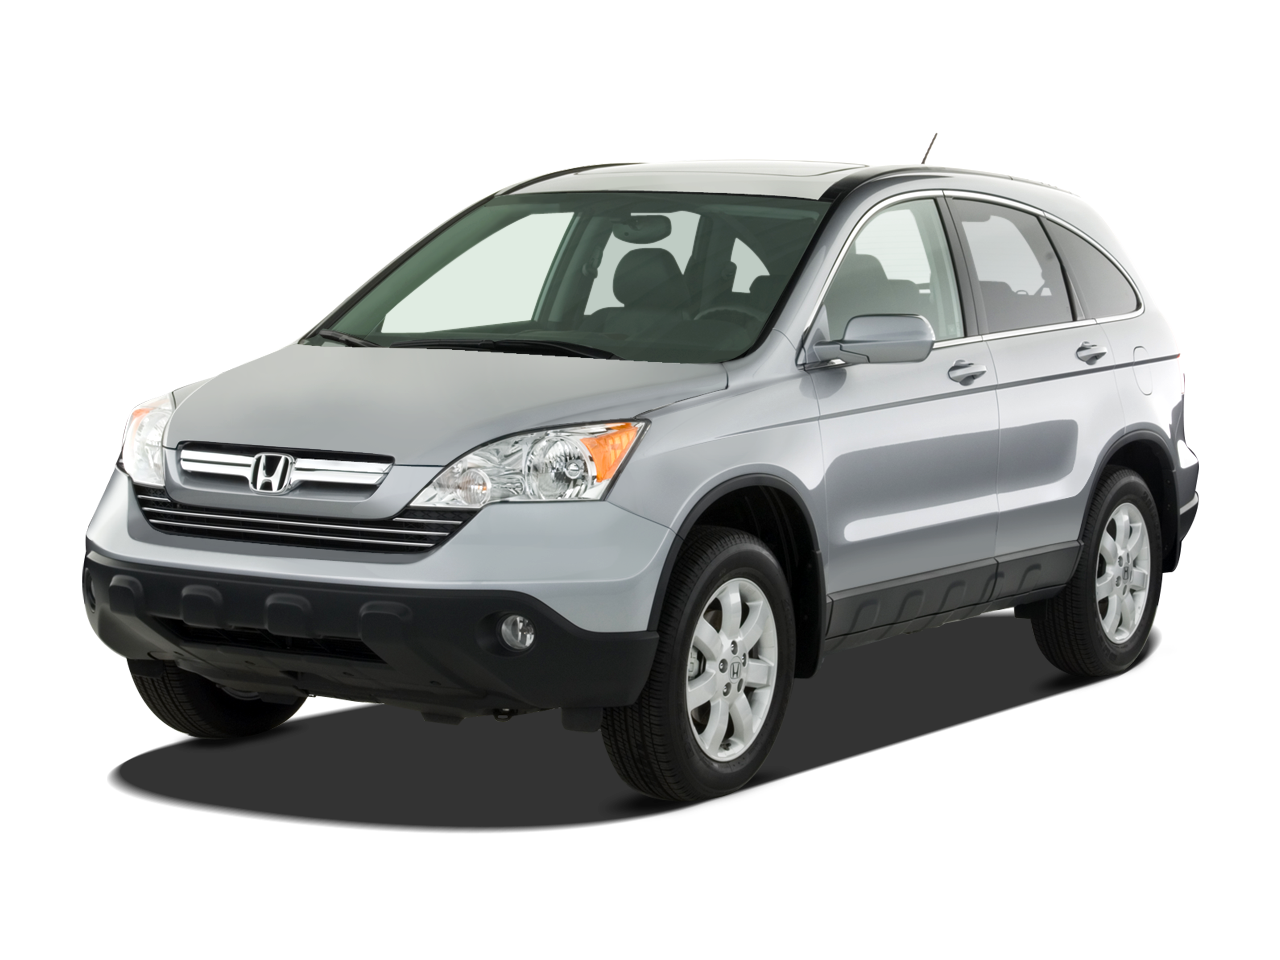 2007 honda cr v new and future cars trucks and suvs for Is a honda crv a suv